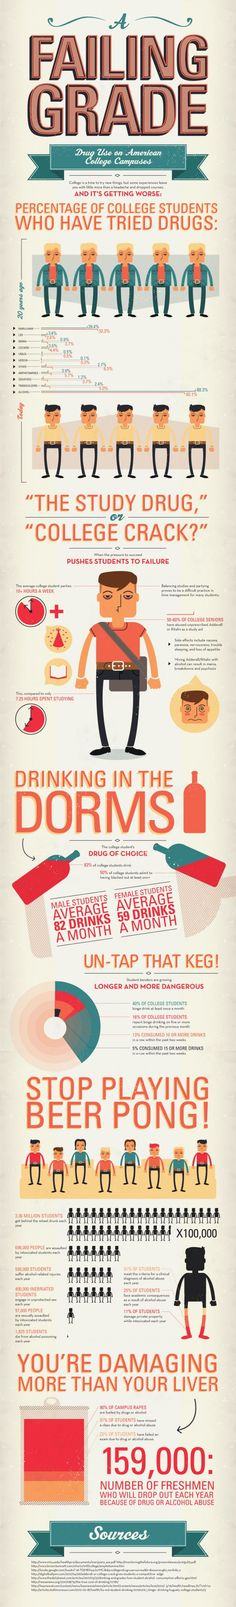 159,000 college freshmen drop out every year because of drink or drugs. #addiction #drugs #infographic #college